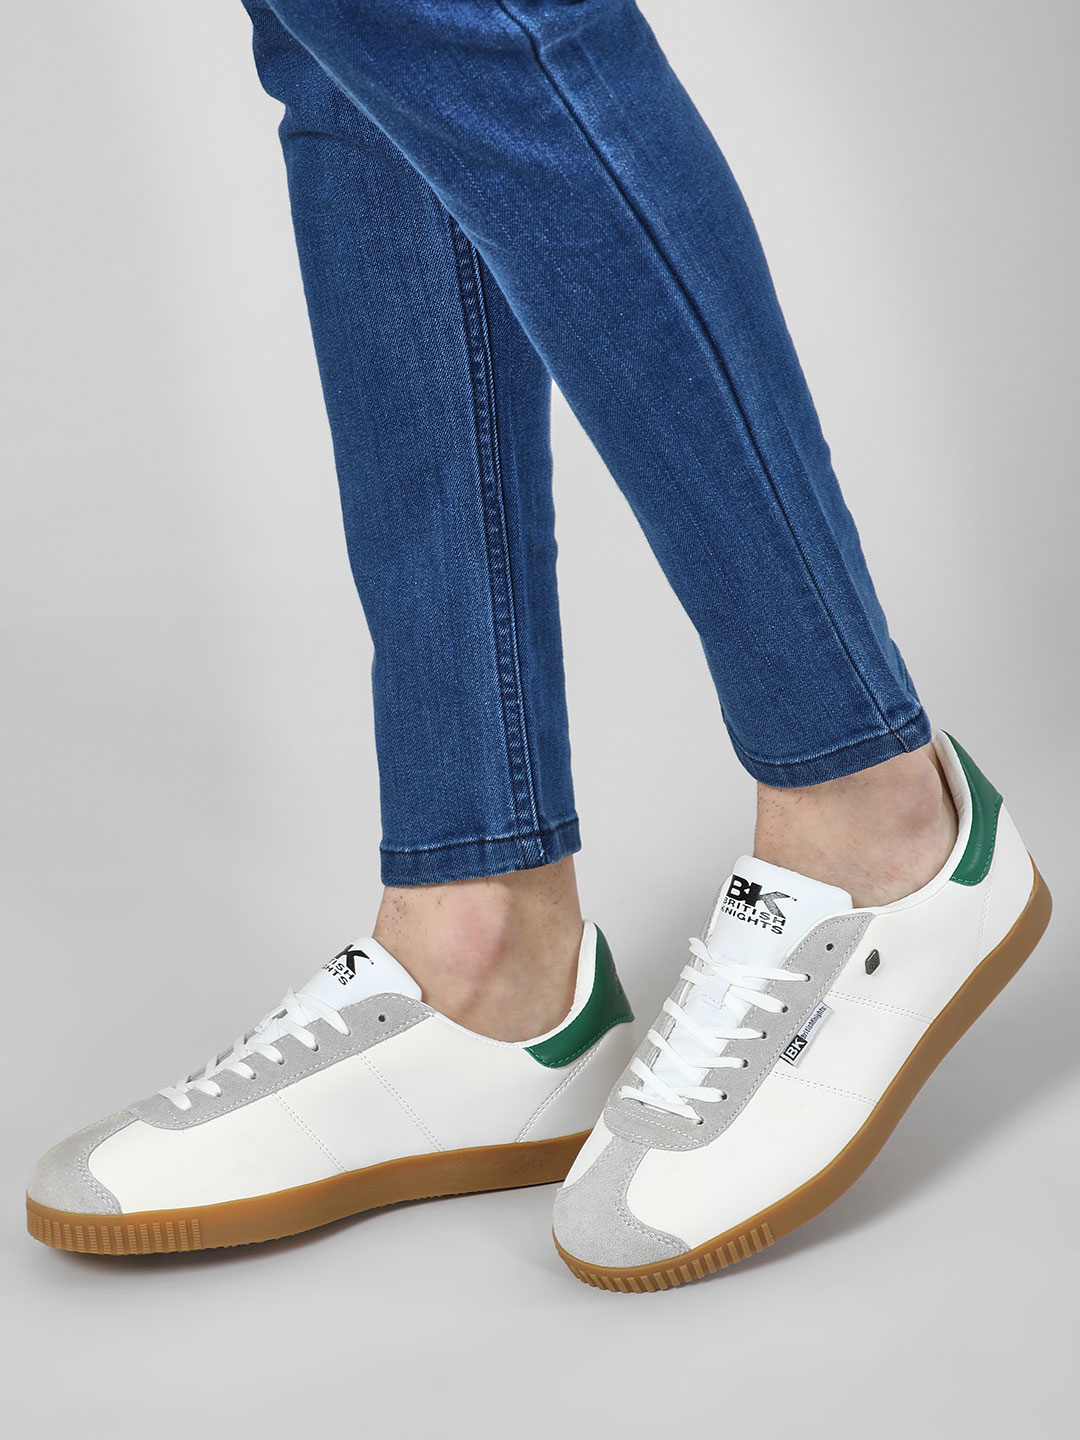 BRITISH KNIGHTS White Contrast Tab Multi-Panelled Sneakers 1